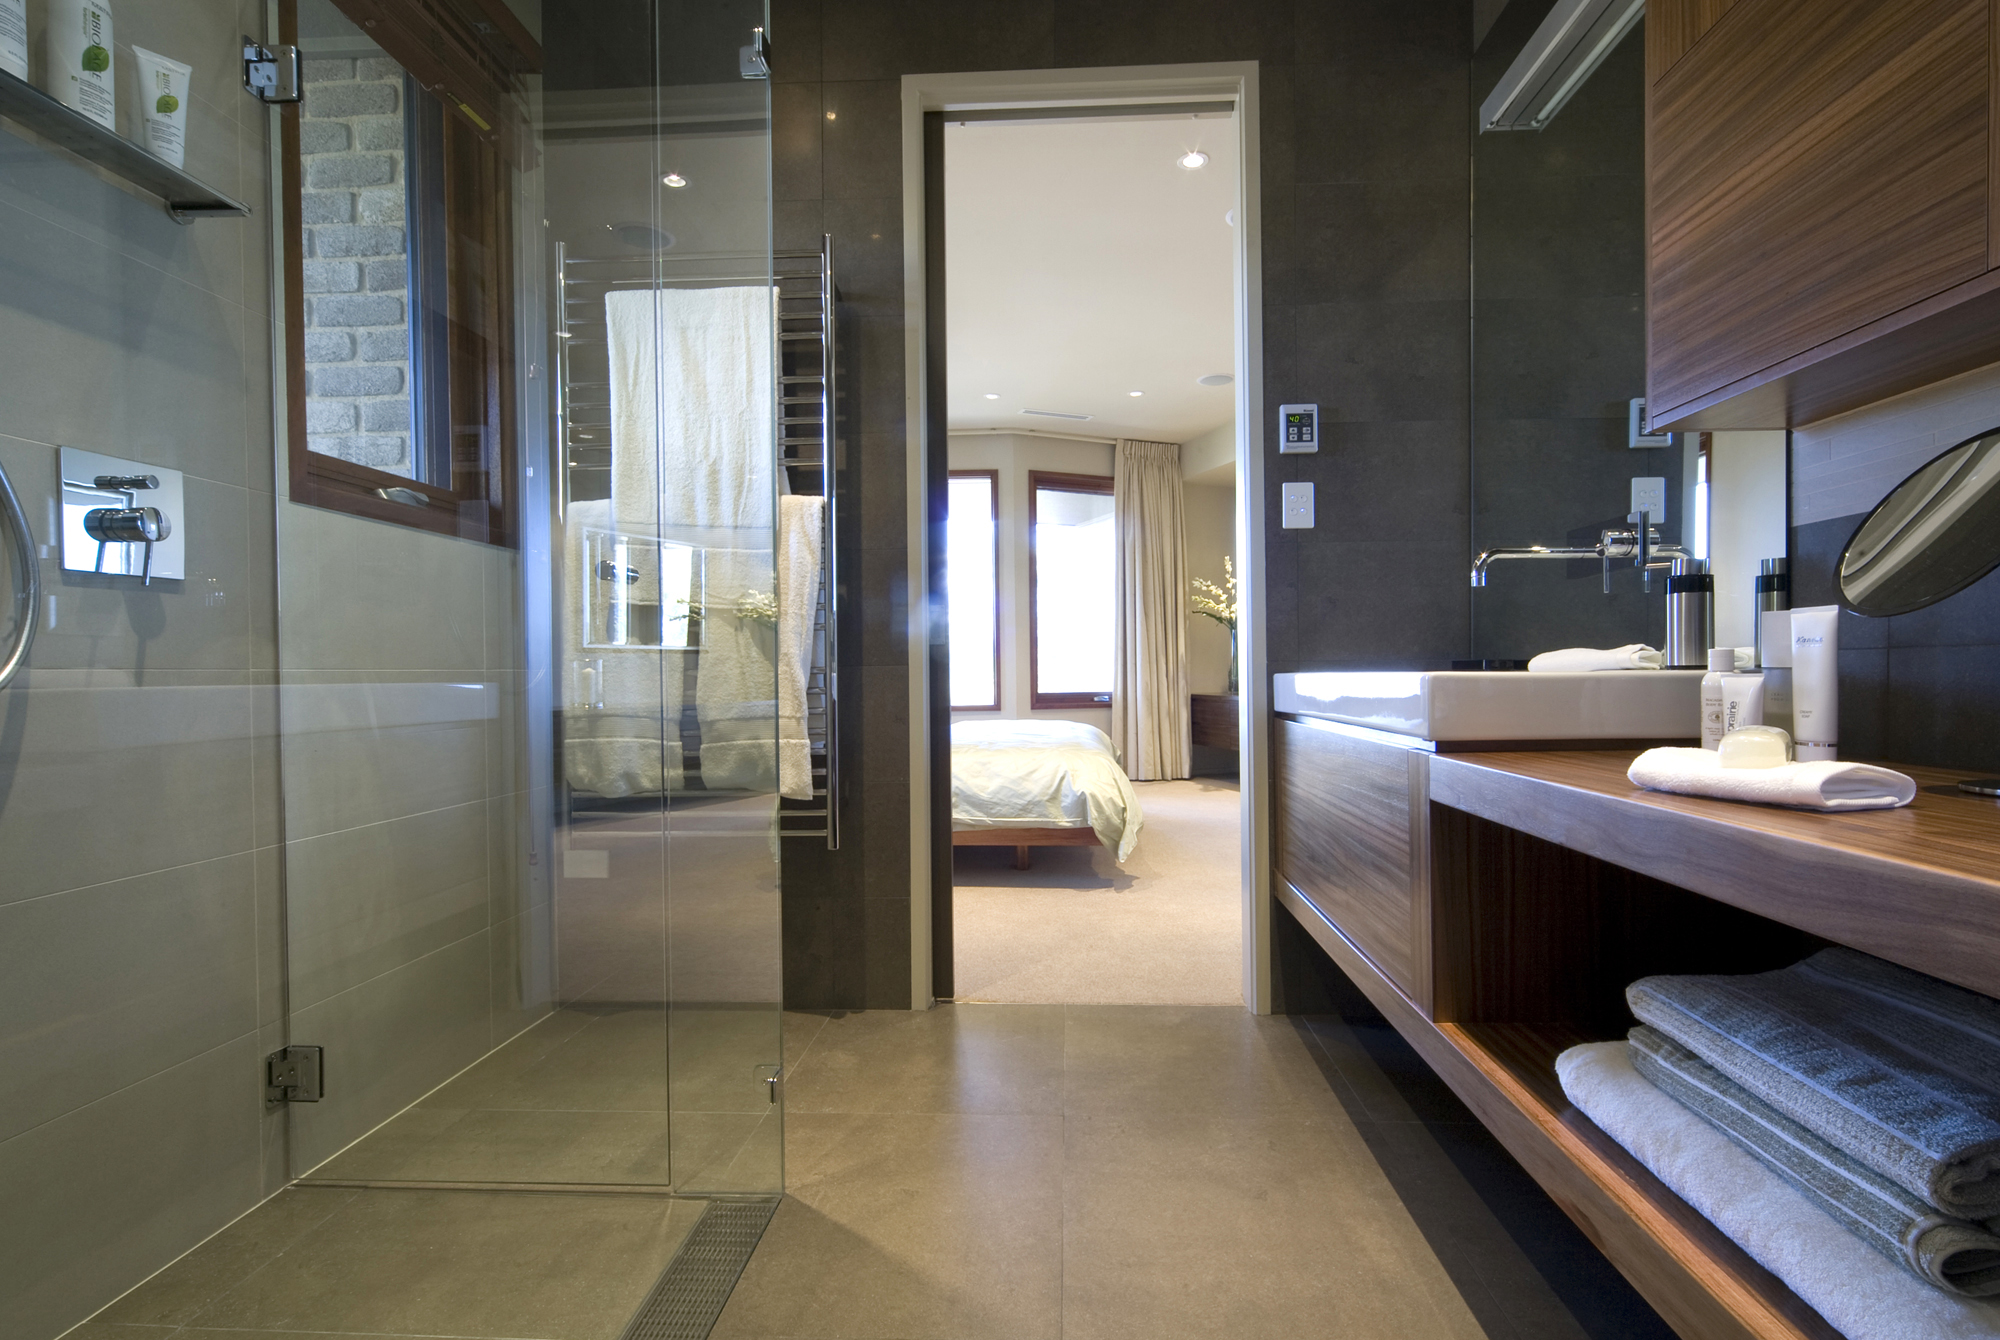 FEATURED-Frameless-shower-screen-in-bathroom